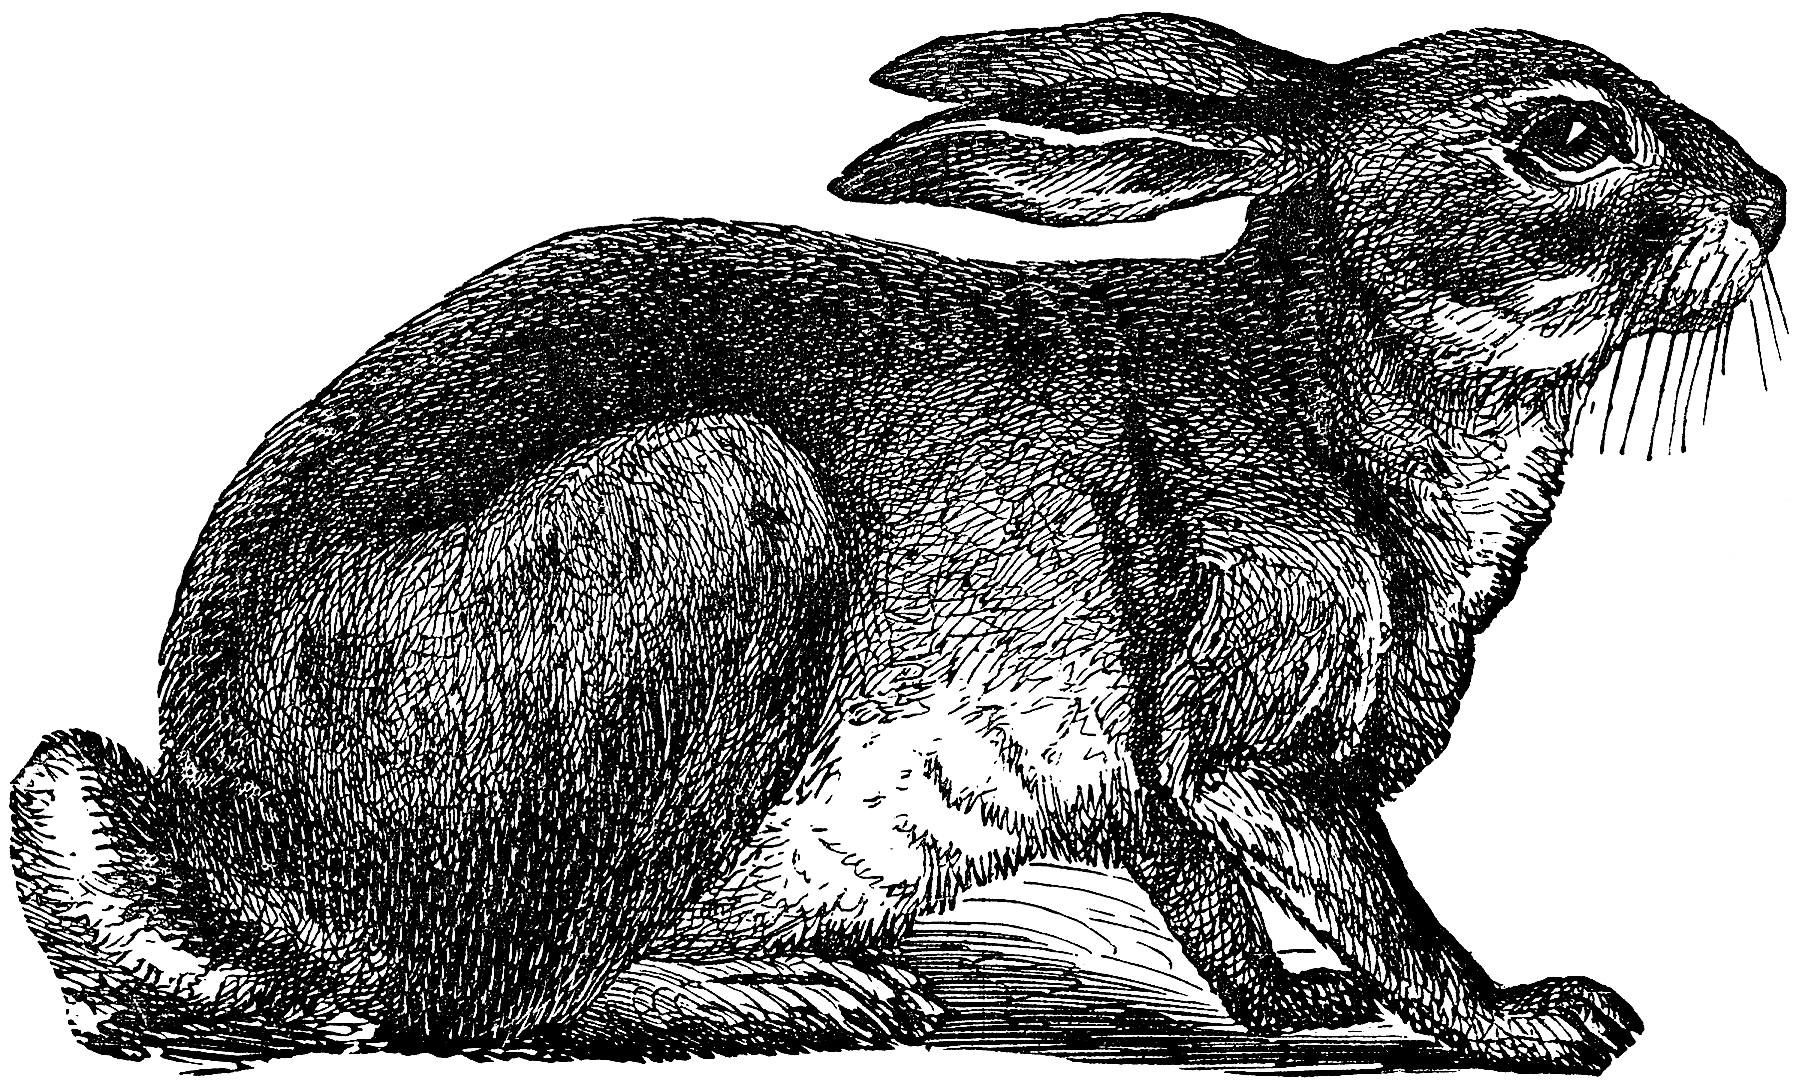 Cute Vintage Black and White Rabbit Clip Art! - The ...